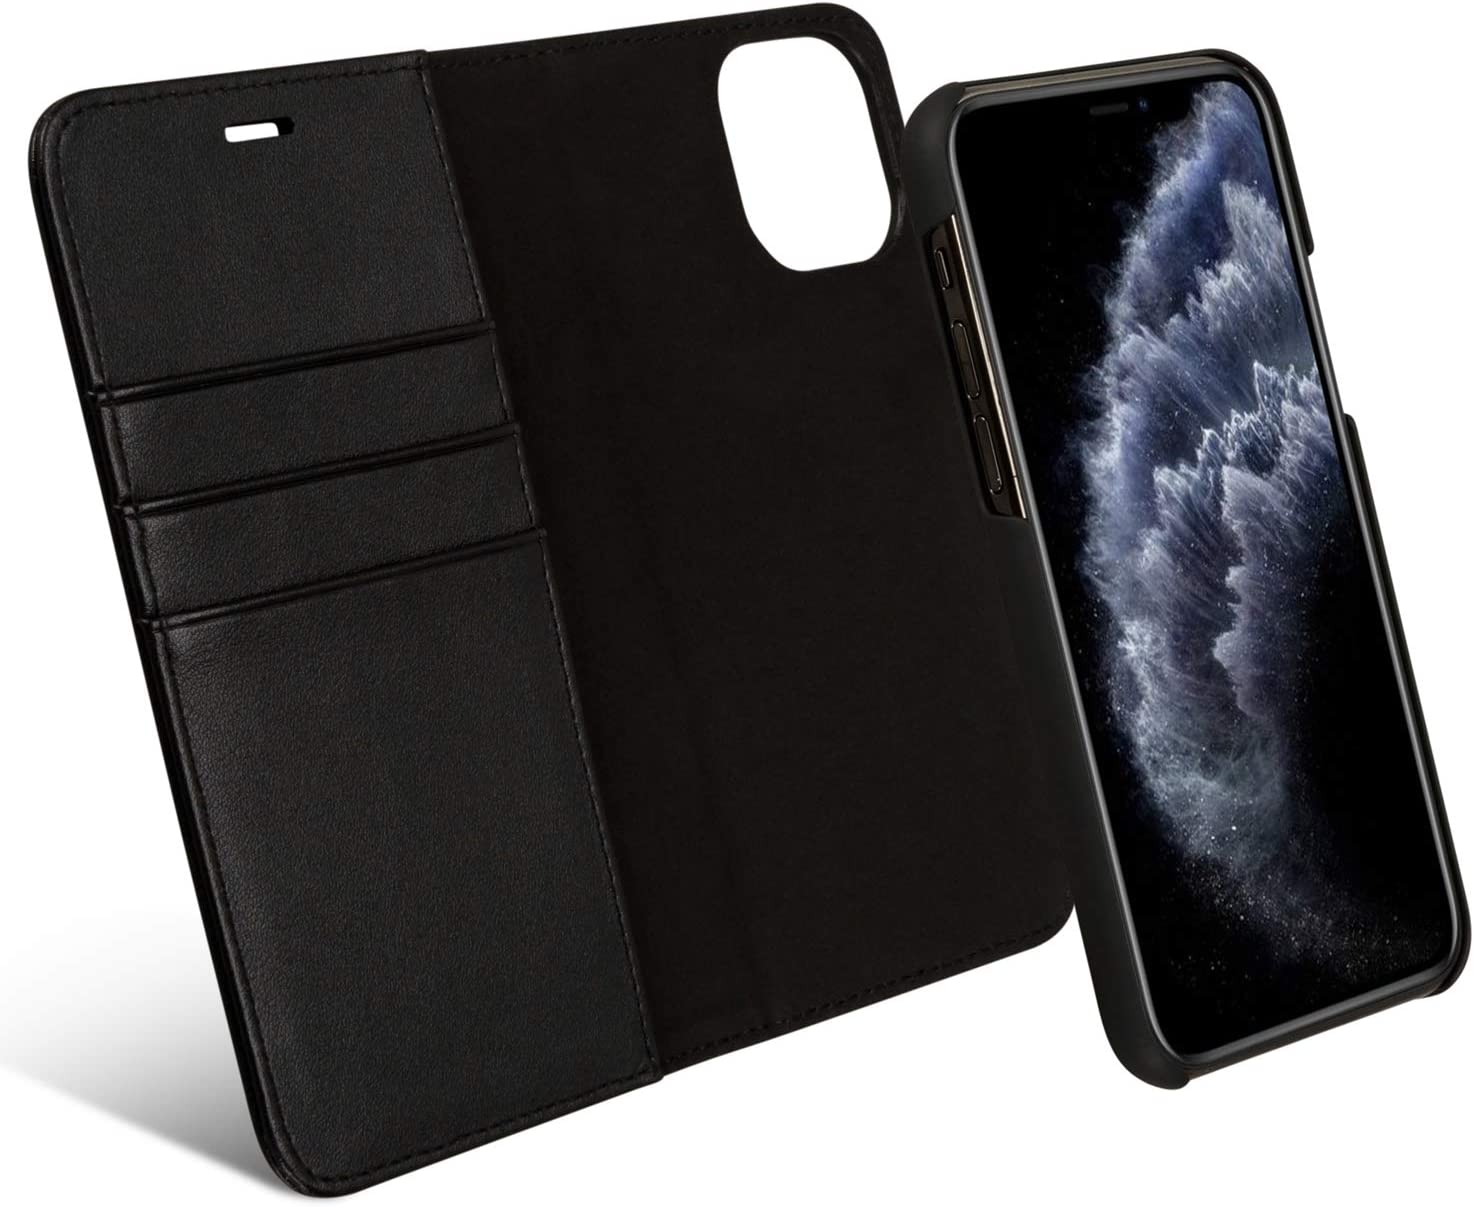 Magnetic Clasp Closure iPhone 11 Folio Flip Case Cover with Gift Box Package Card Holder iPhone 11 6.1/'/' Detachable Wallet Case for iPhone 11 Black AMOVO Case for iPhone 11 6.1 Stand Feature Hand Strap Vegan Leather 2 in 1